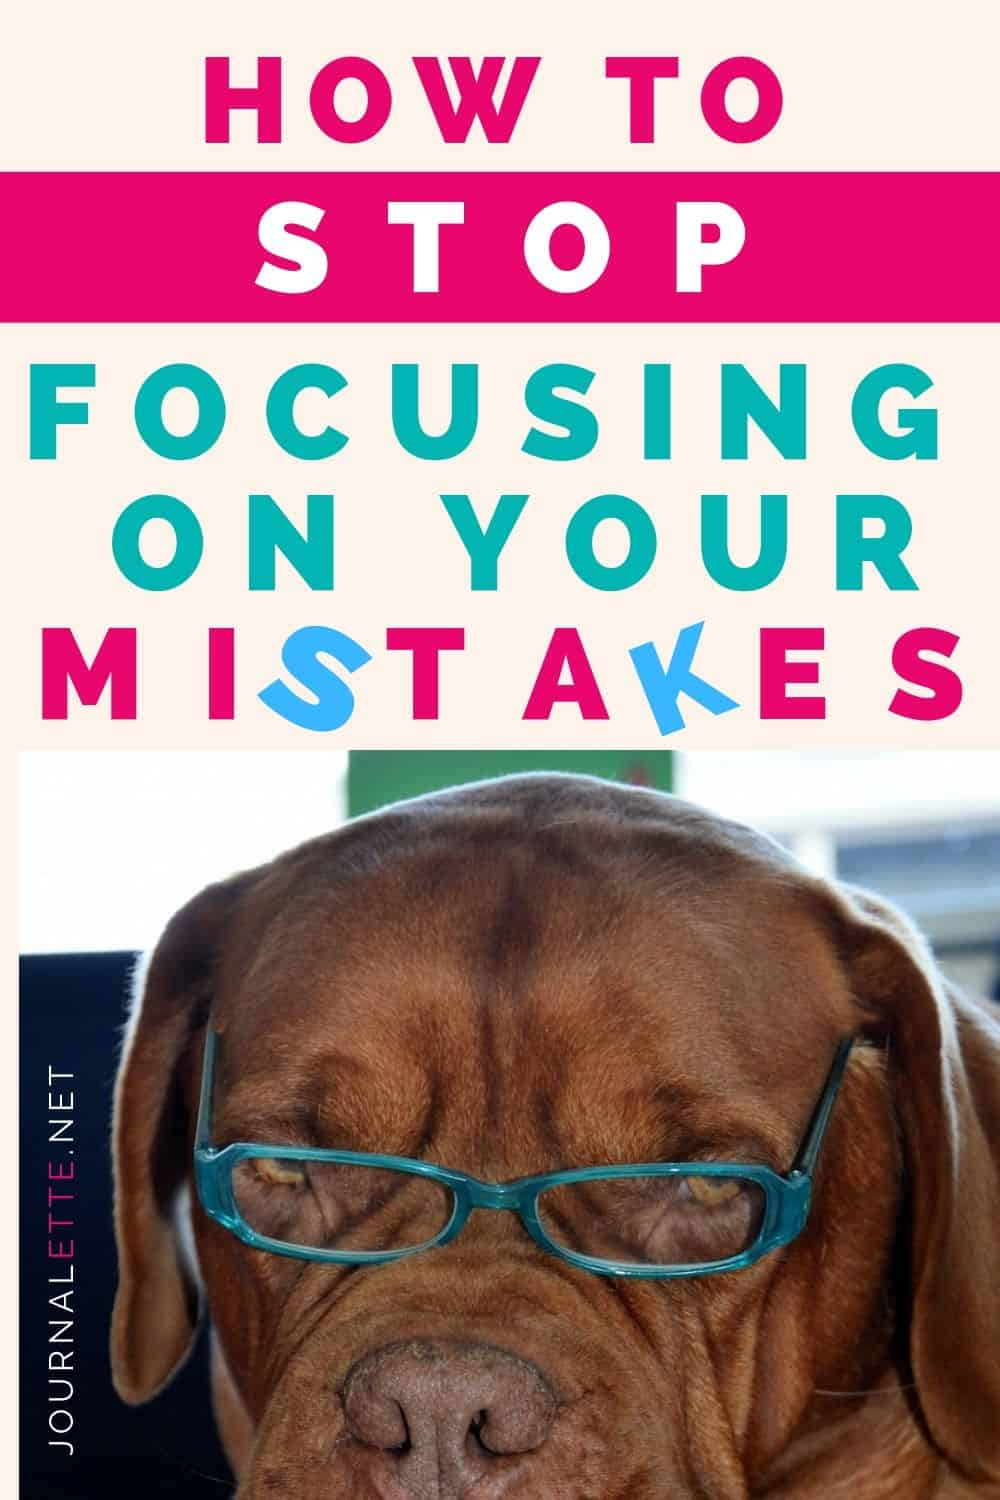 image of dog with text above how to stop focusing on your mistakes